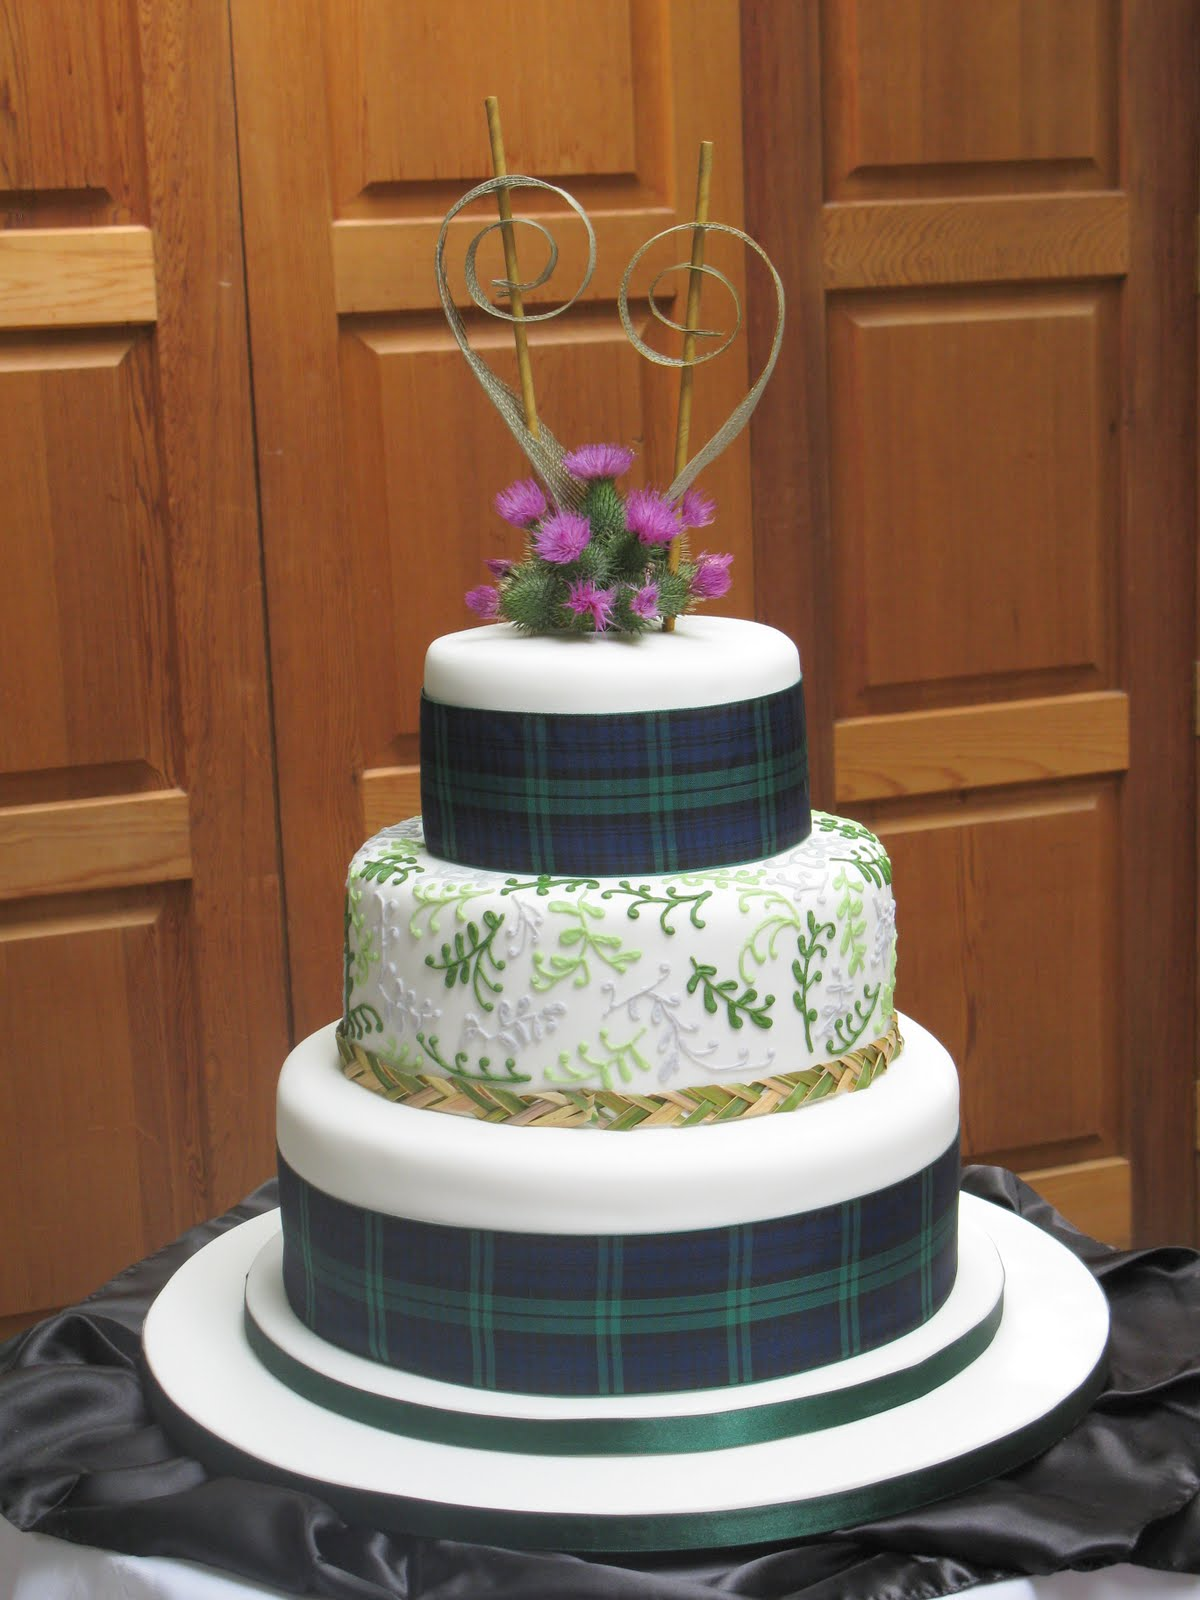 Sweet Bites Cakes: Scottish and New Zealand Themed Cake